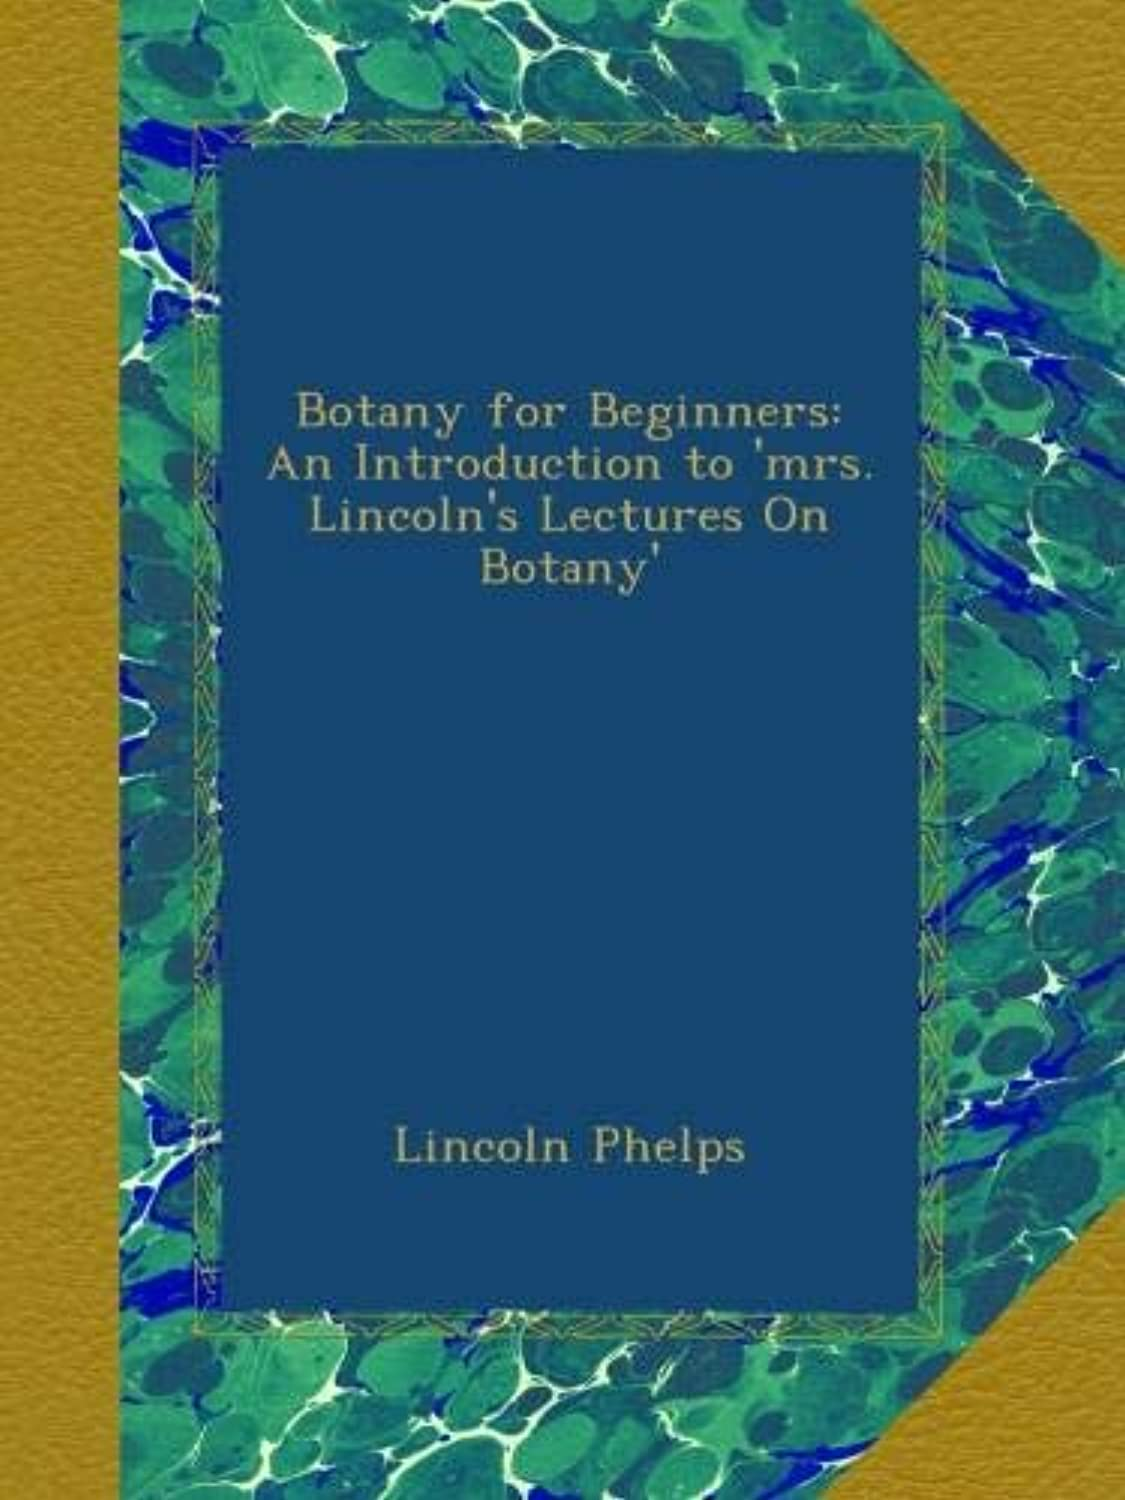 Botany for Beginners: An Introduction to 'mrs. Lincoln's Lectures On Botany'